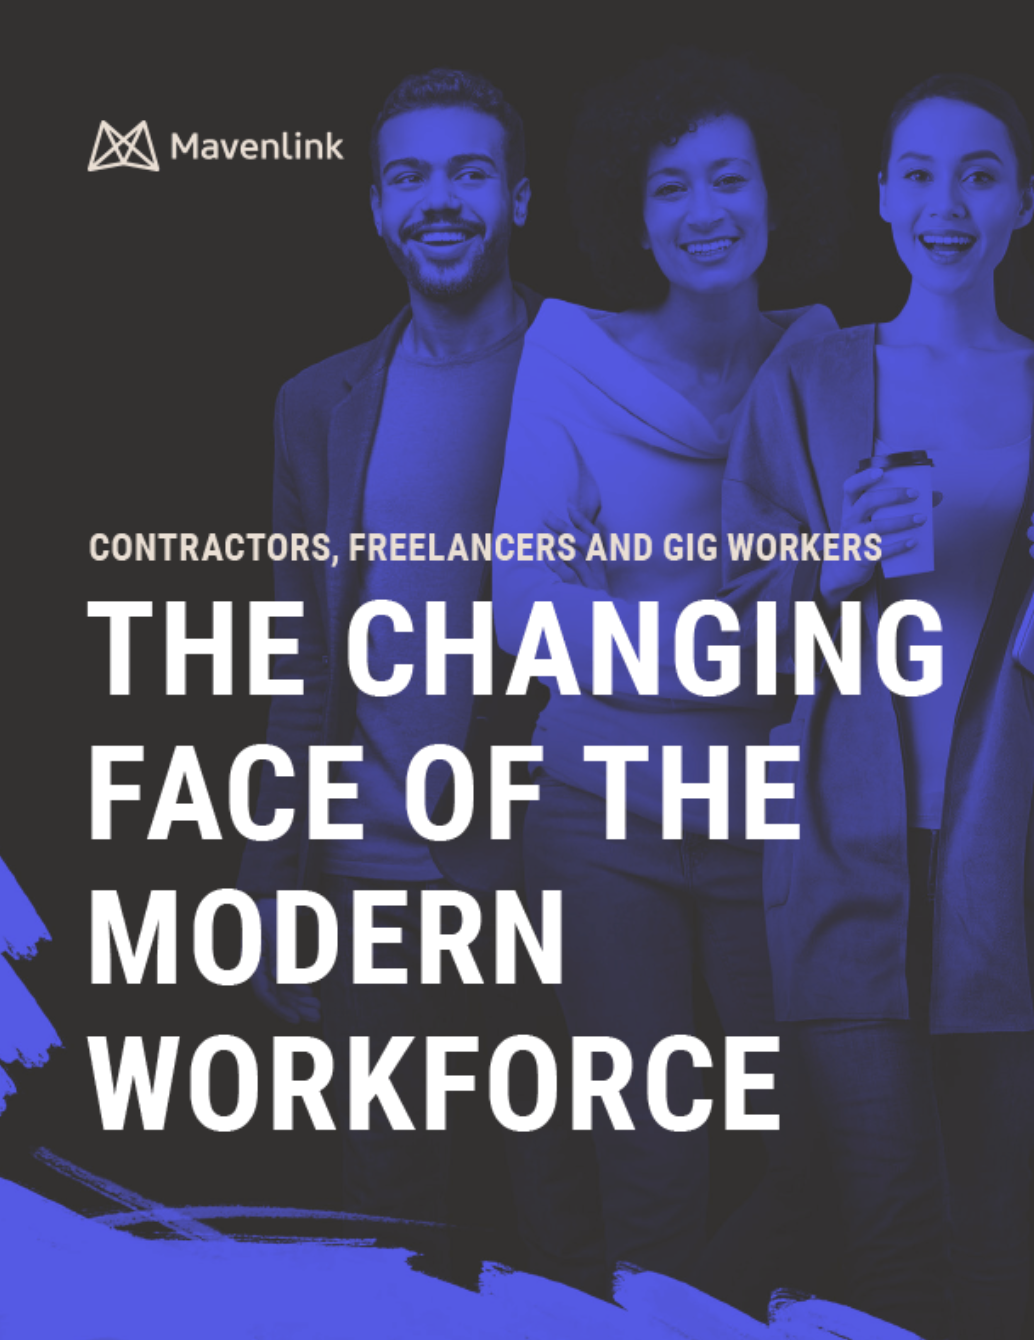 The Changing Face of the Modern Workforce